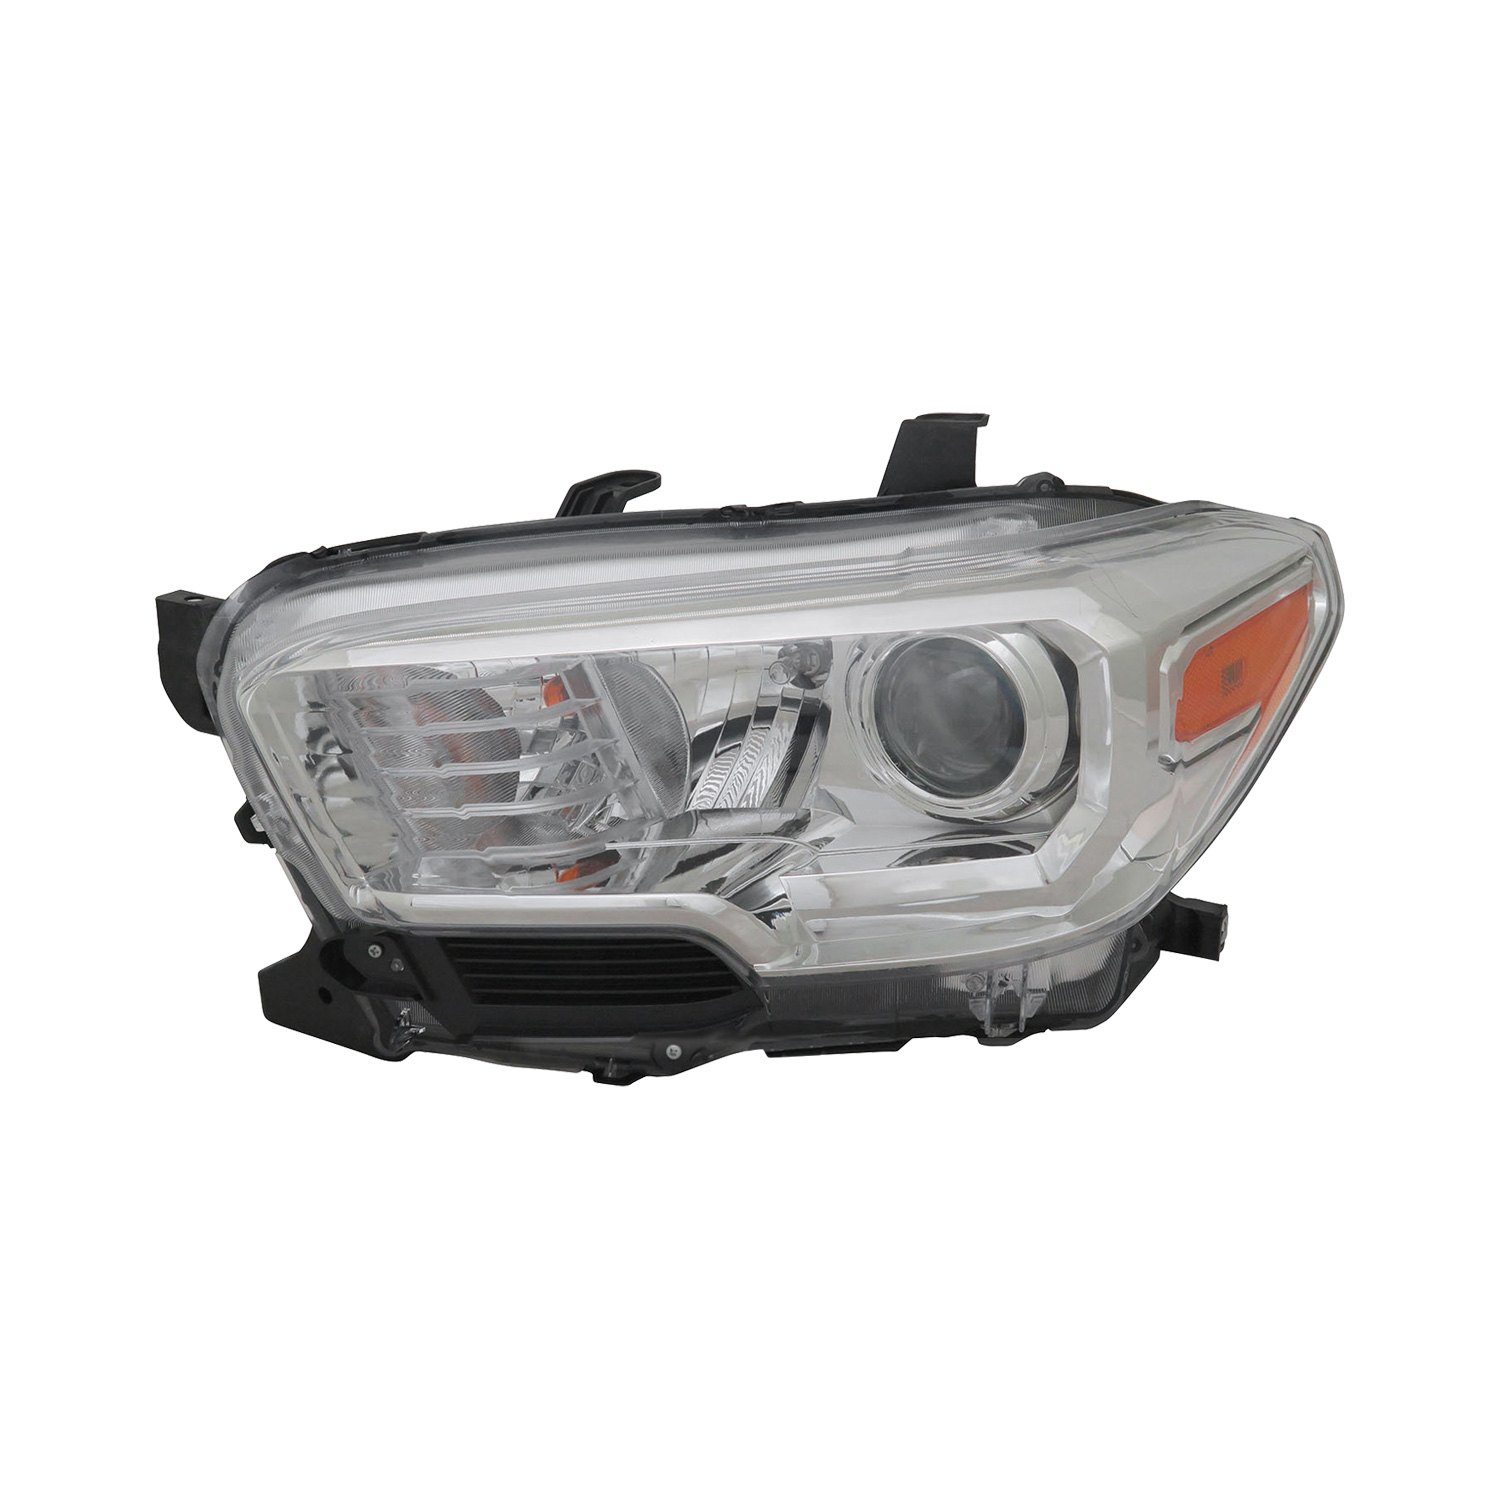 tyc toyota tacoma base sr 2016 replacement headlight. Black Bedroom Furniture Sets. Home Design Ideas